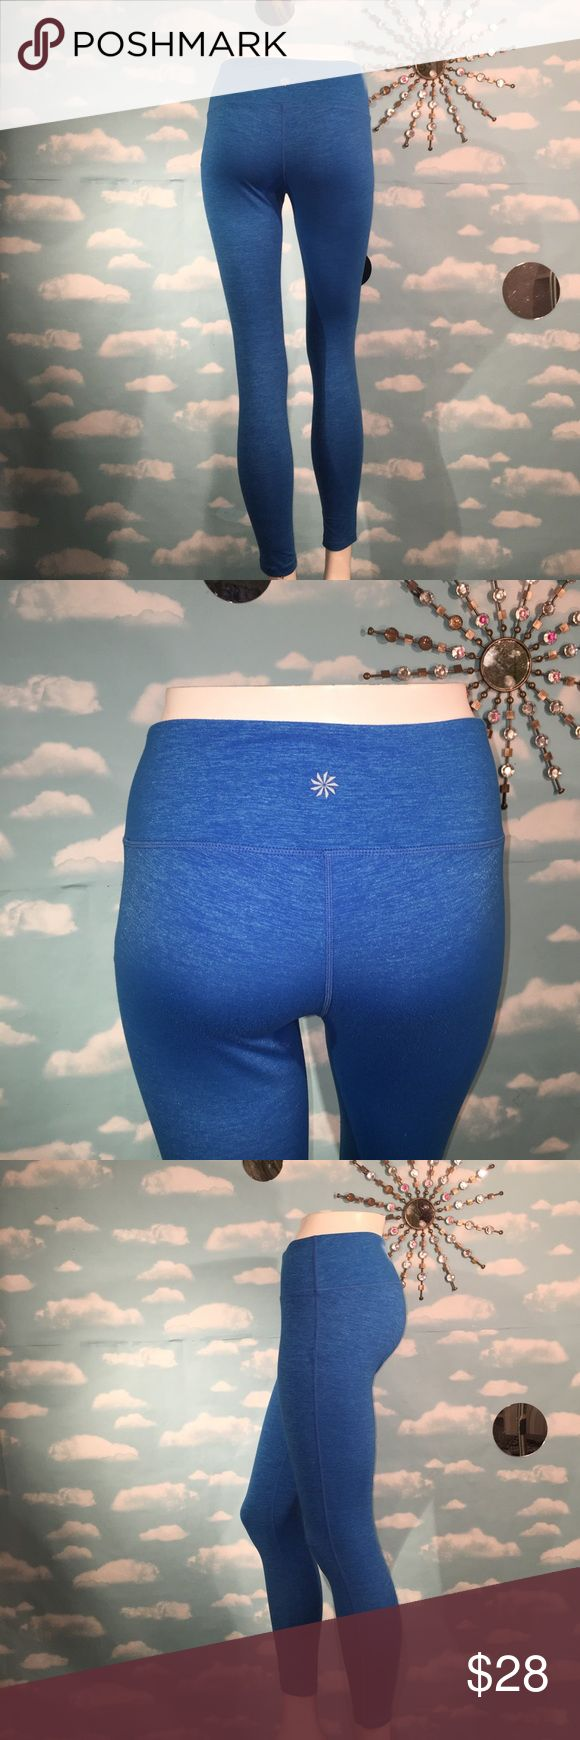 Athleta Legging Never worn, so condition is new! Heathered  royal blue, color is accurate in photos! Sweat wicking, 4 way stretch, I follow all Posh Mark Rules! 🚫No Trading! Reasonable Offers Welcome! I value the trust it takes to purchase items from a complete strangers closet and will personally guarantee your satisfaction. Thanks for looking! beautiful leggings! Size small. Athleta Pants Leggings